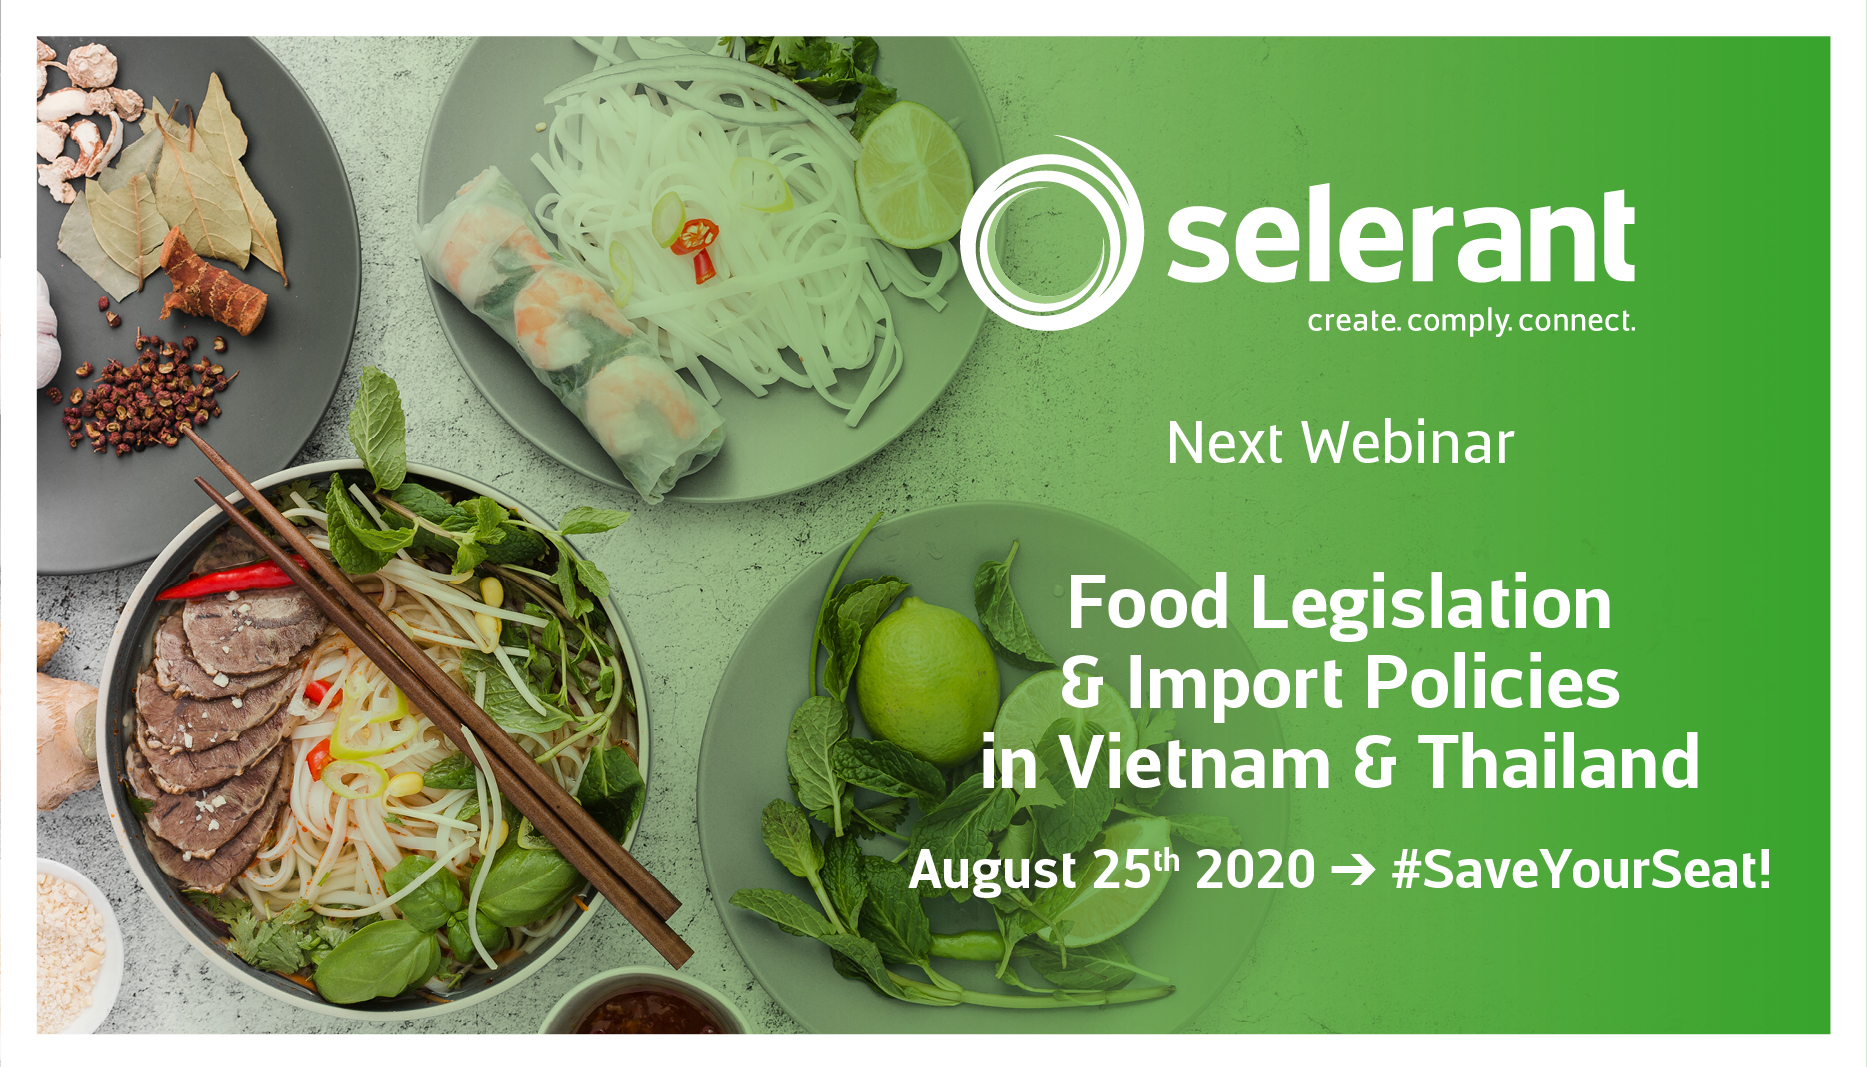 Webinar: Food Legislation & Import Policies in Vietnam & Thailand - Subscribe